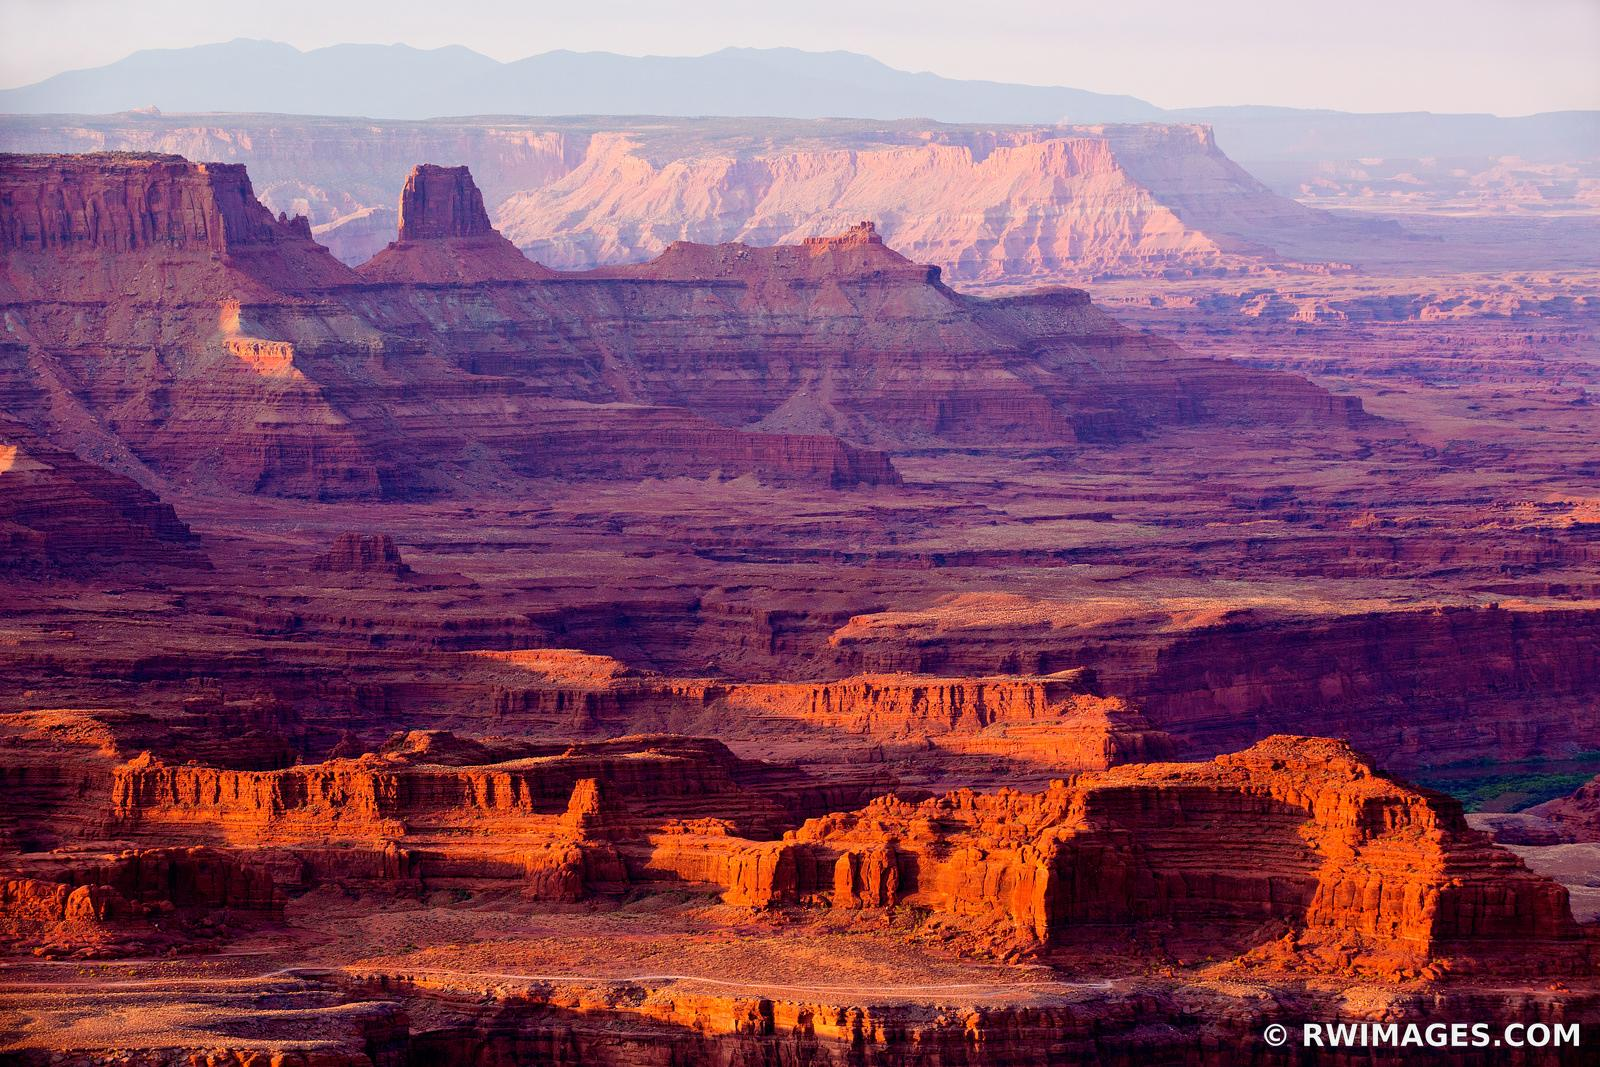 DEAD HORSE POINT STATE PARK UTAH CANYONLANDS NATIONAL PARK UTAH SUNRISE